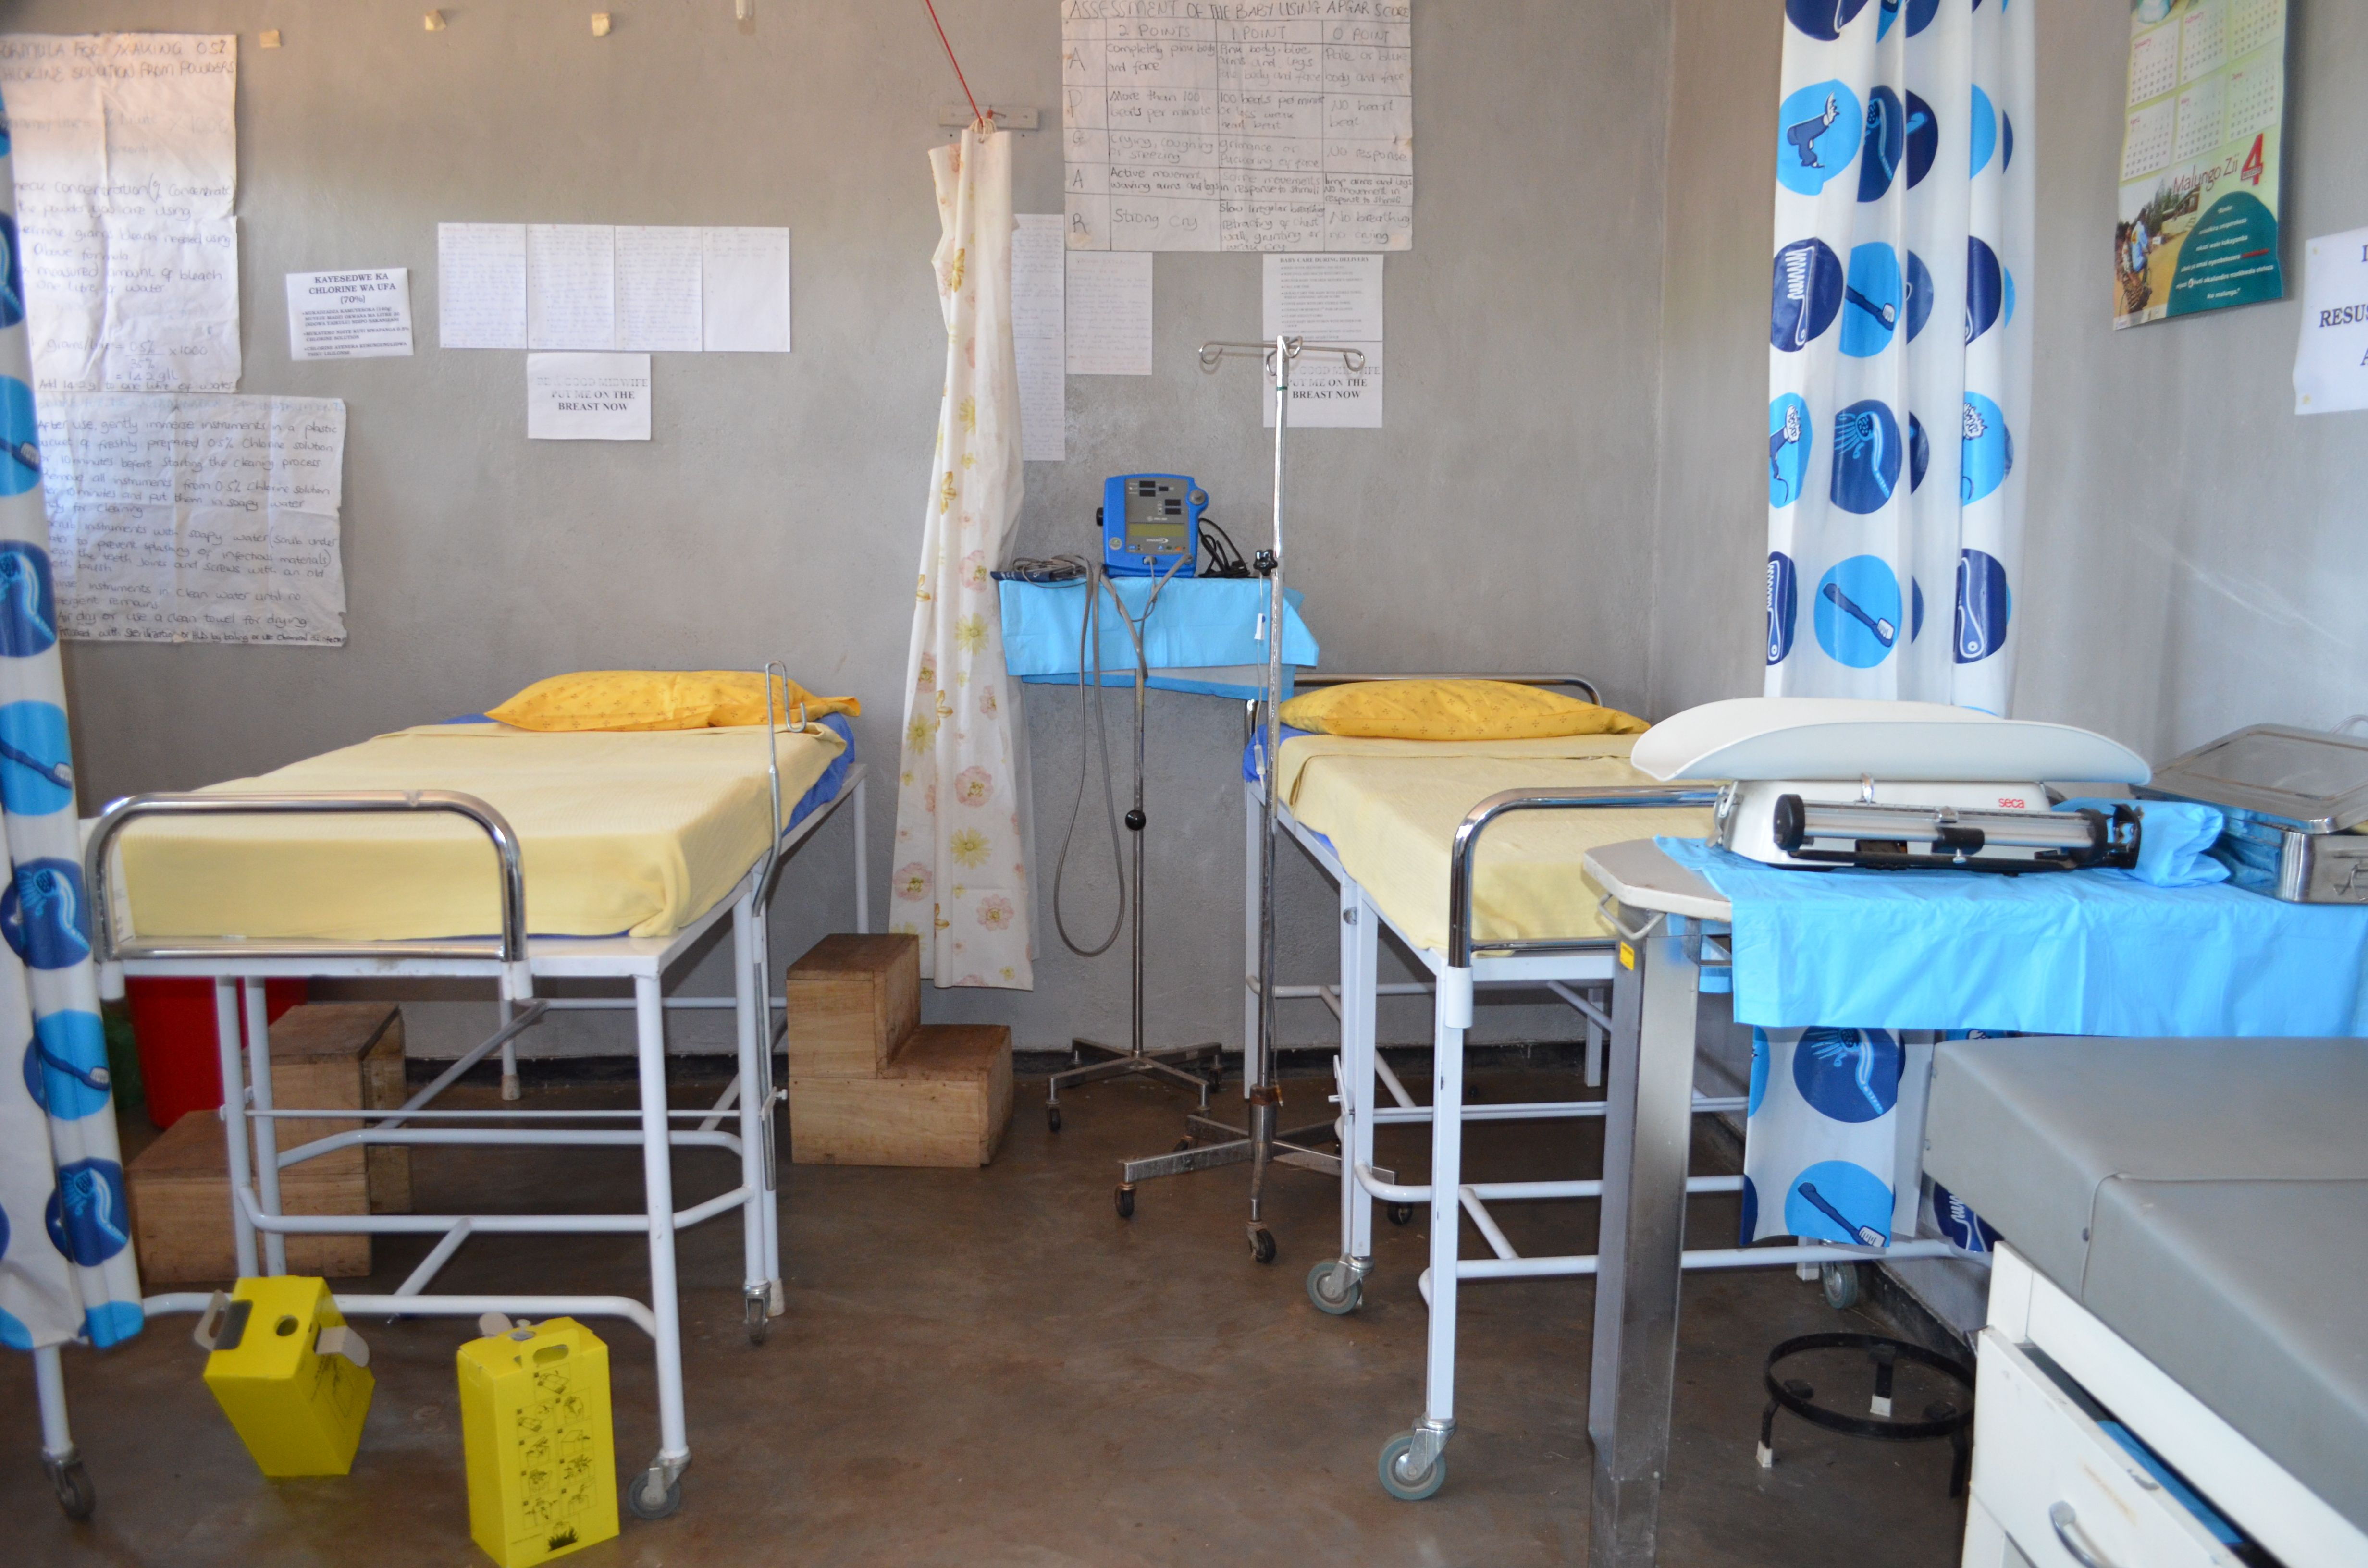 Inside look of the Nandumbo Health Centre Hospital Beds